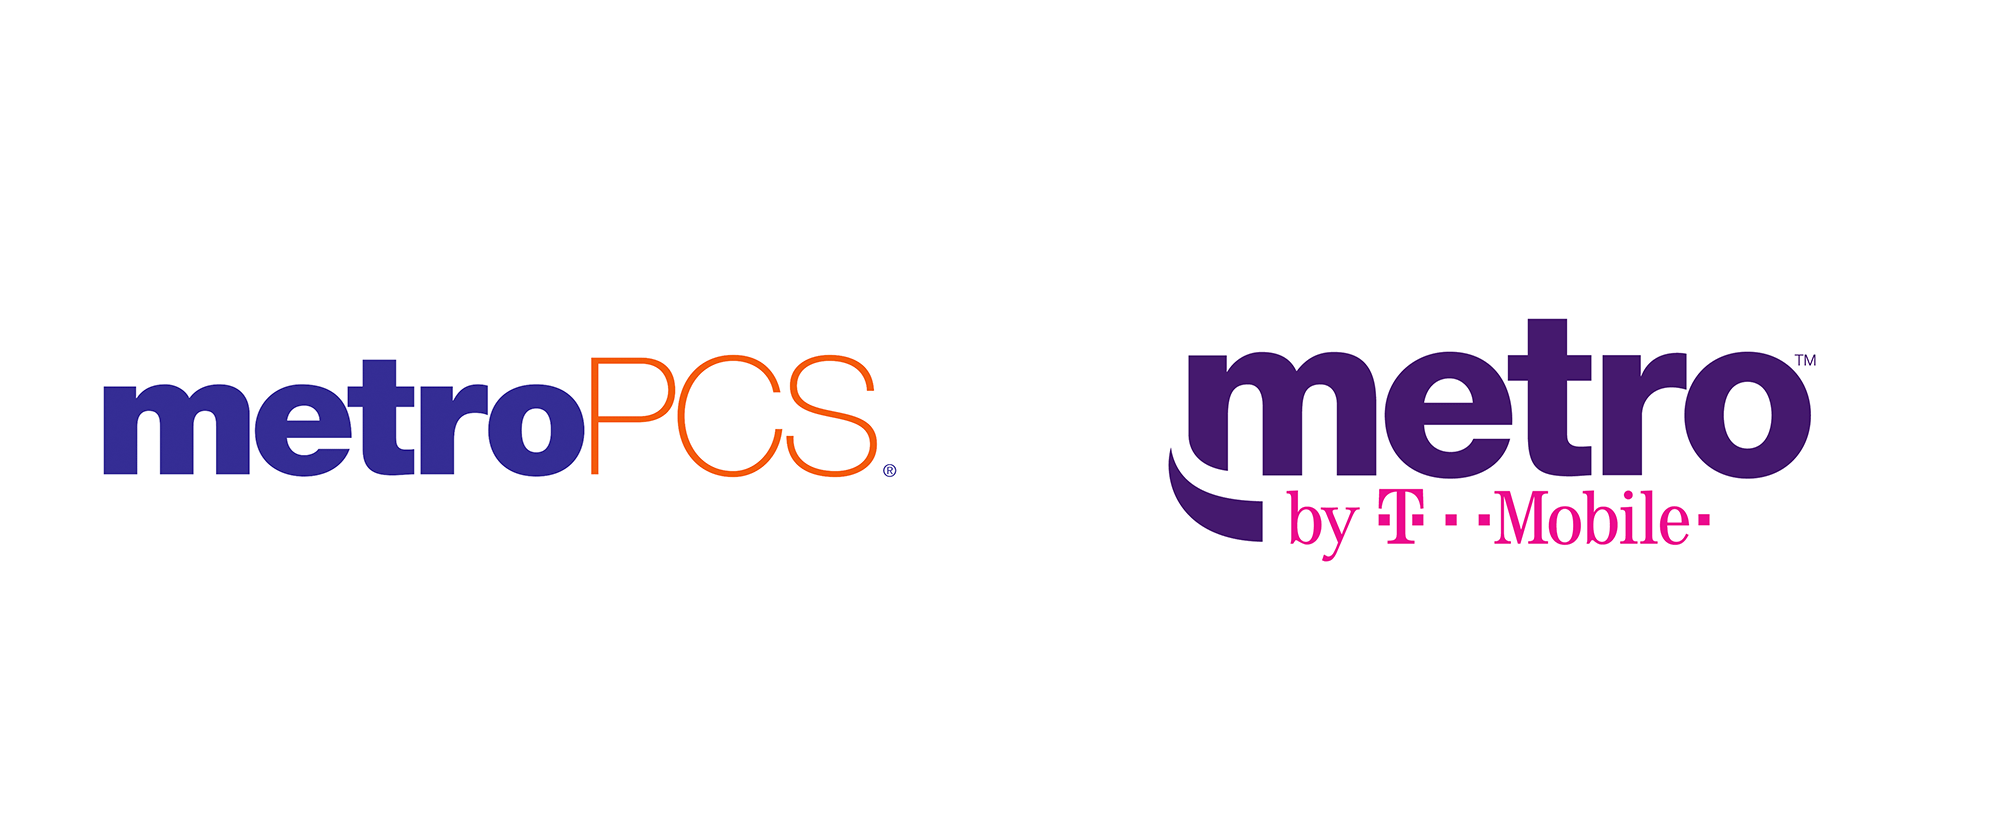 Noted New Name And Logo For Metro By T Mobile New Names Tech Company Logos Logos